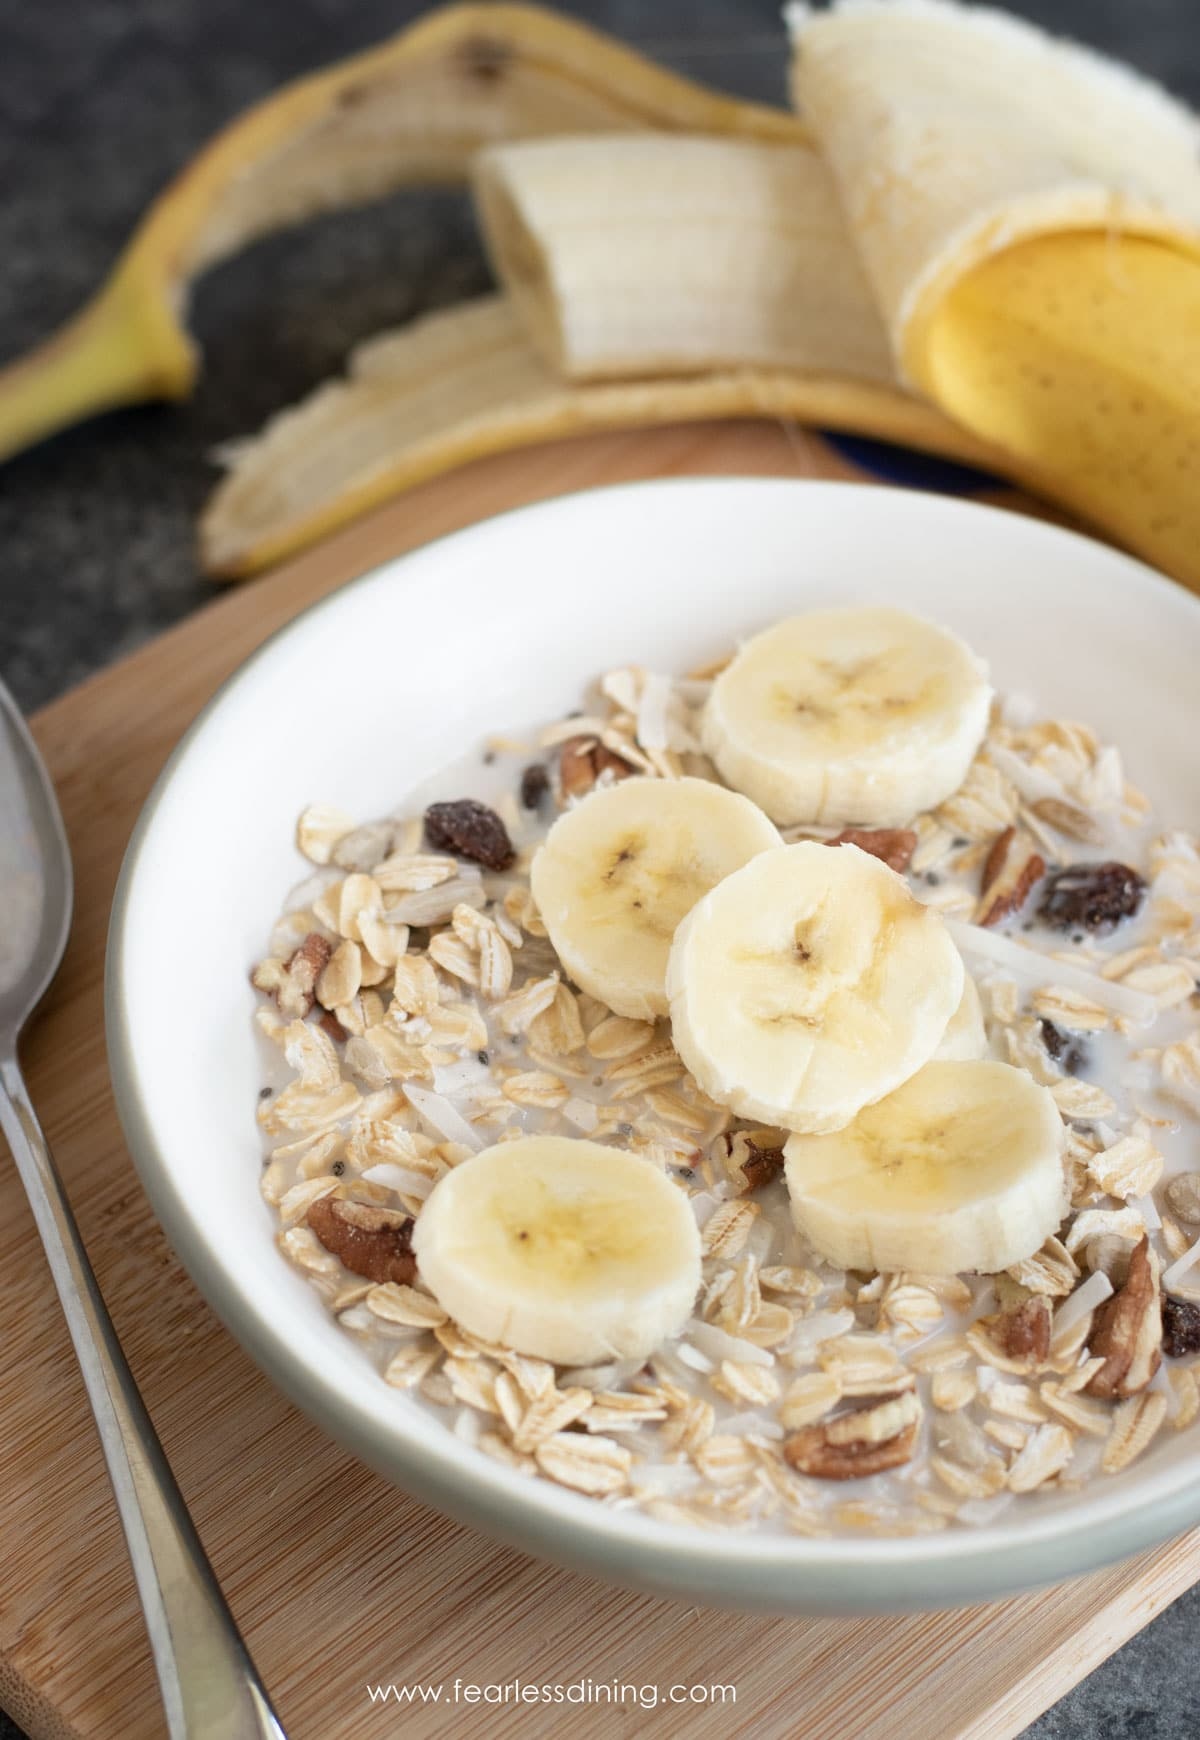 a bowl of muesli topped with sliced bananas